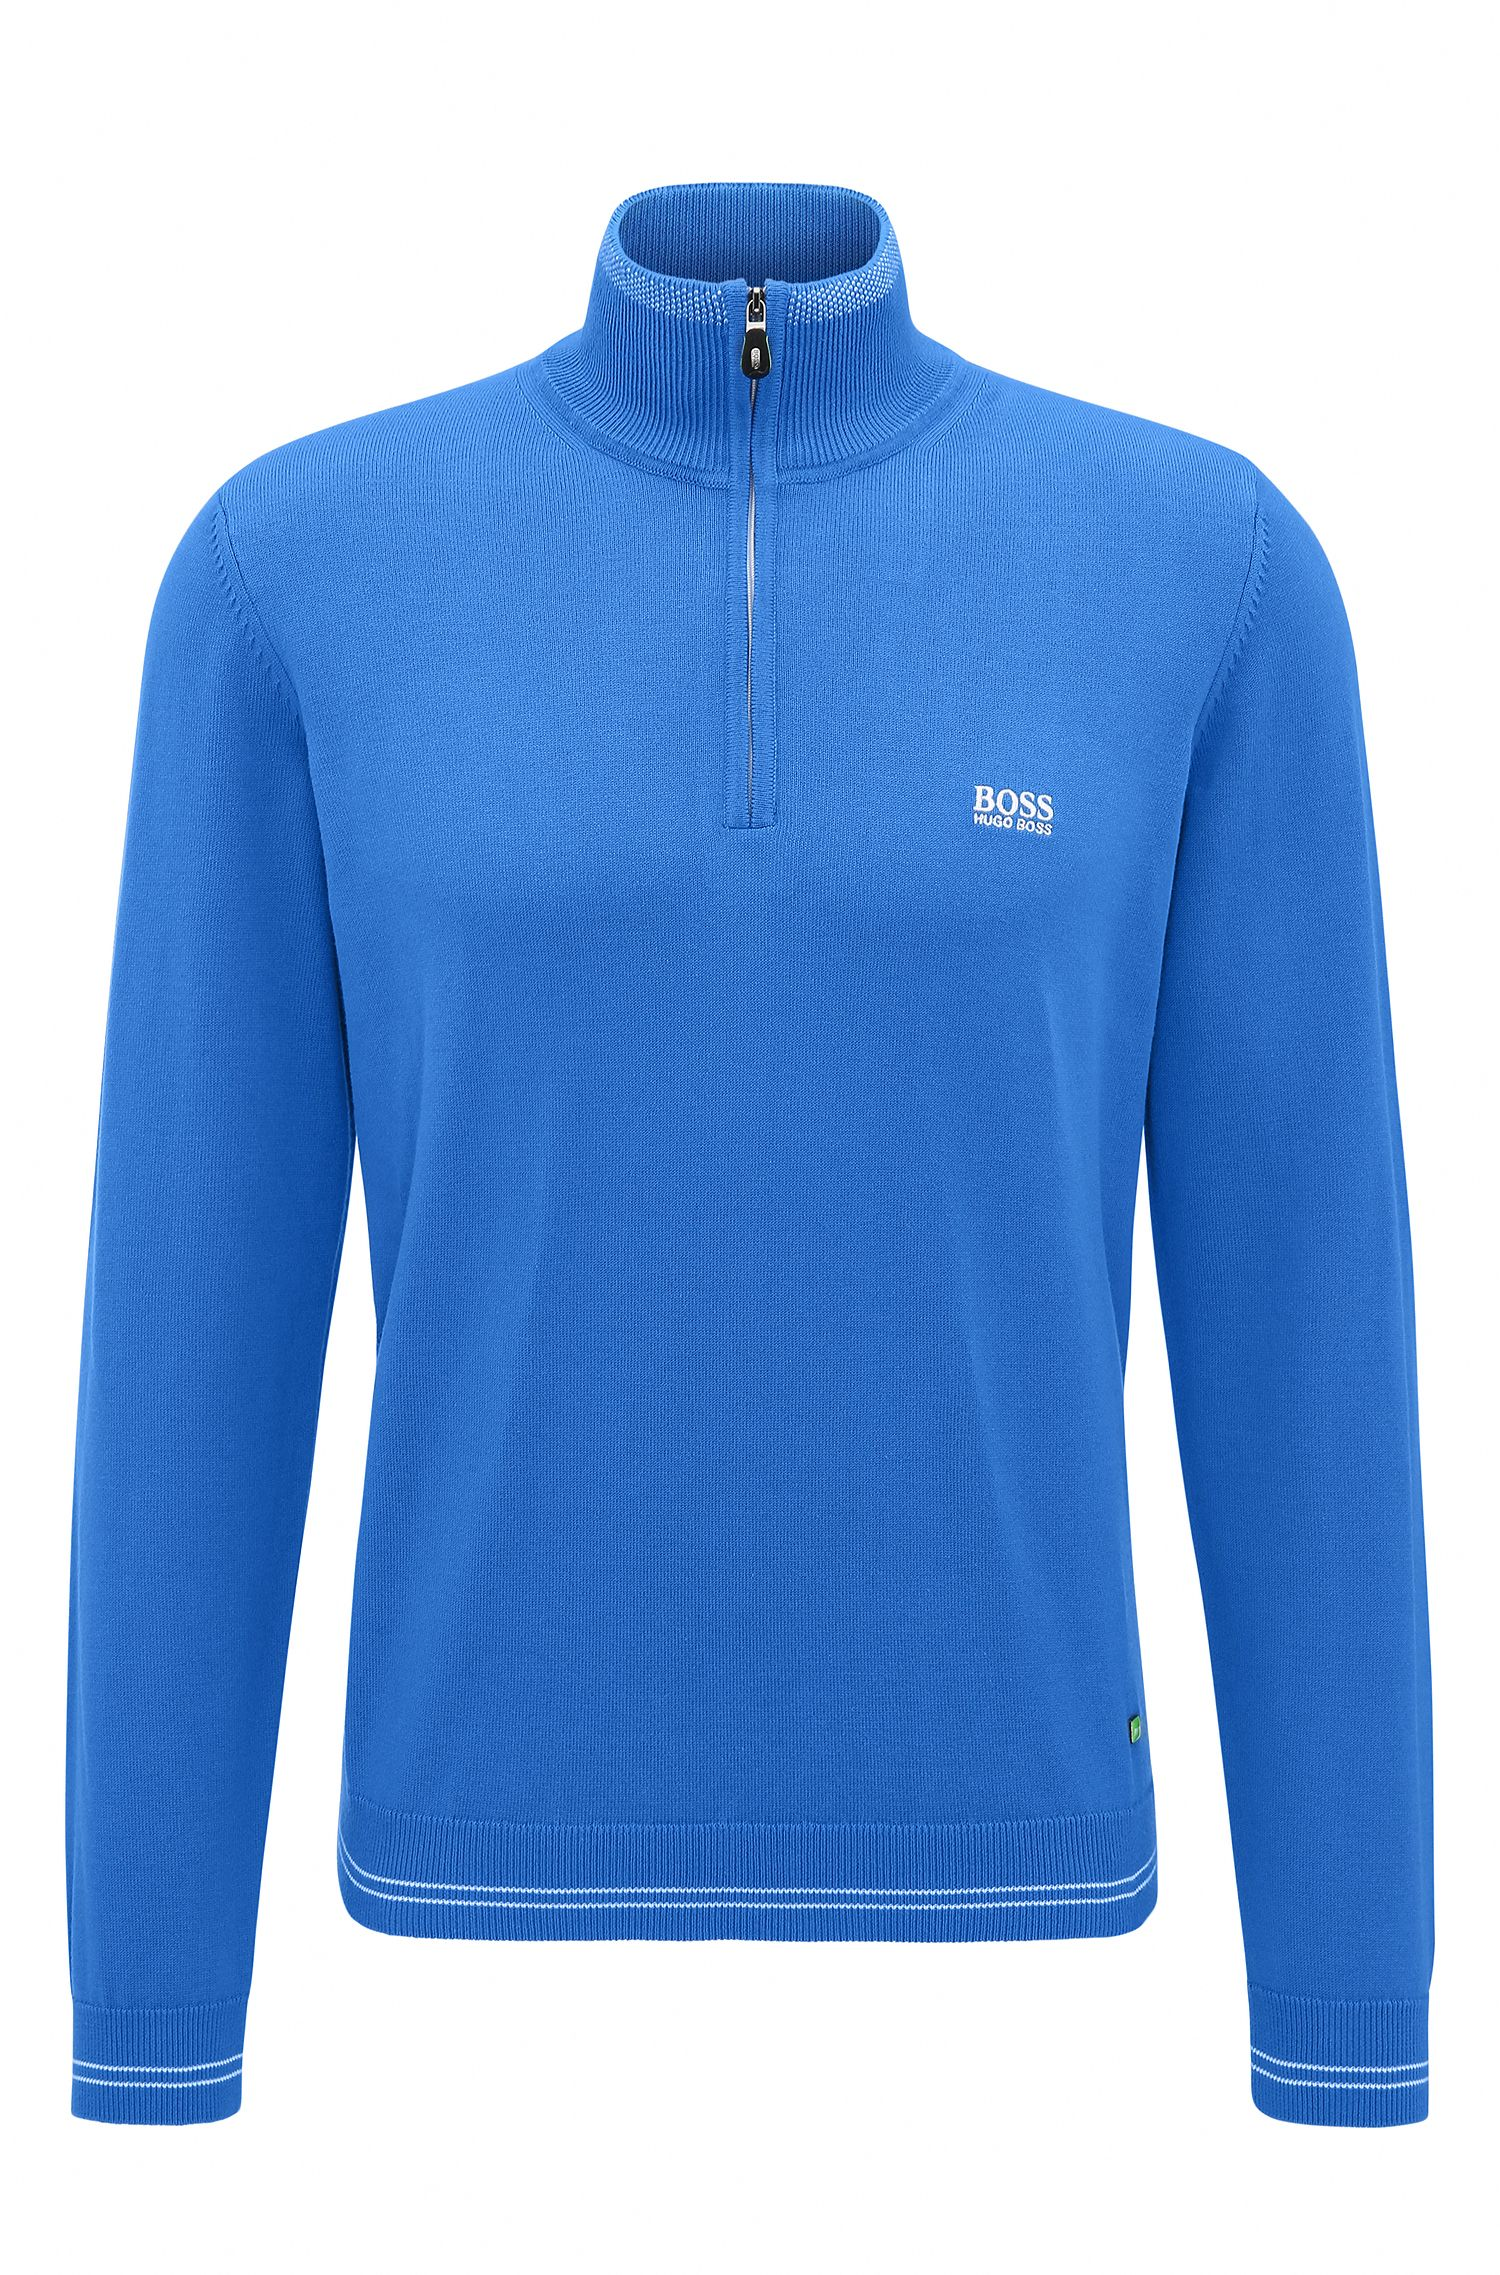 Cotton Blend Half-Zip Sweater | Zime W17